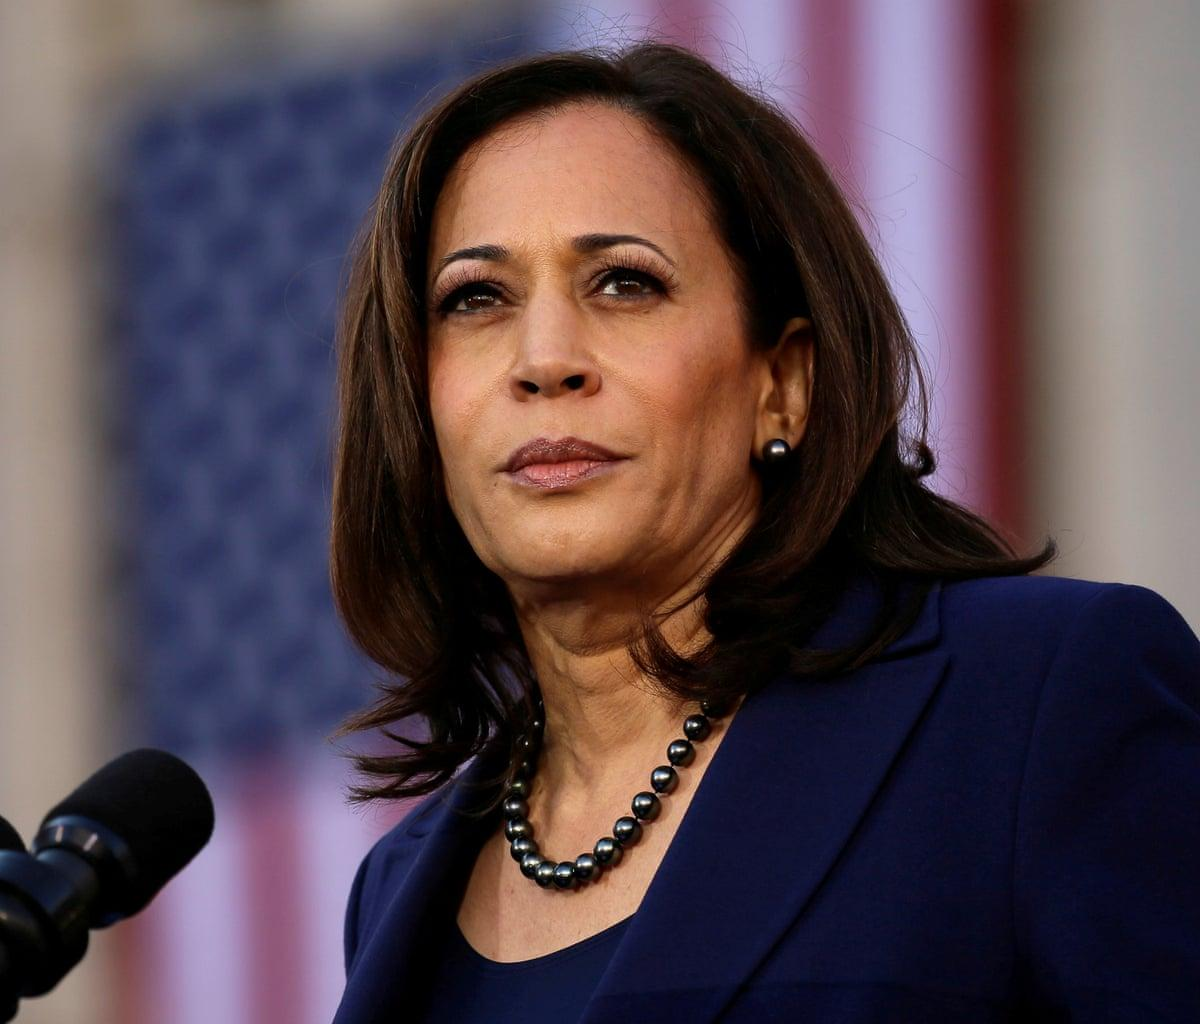 Kamala Harris Tells People To Have Faith In The Voting Process